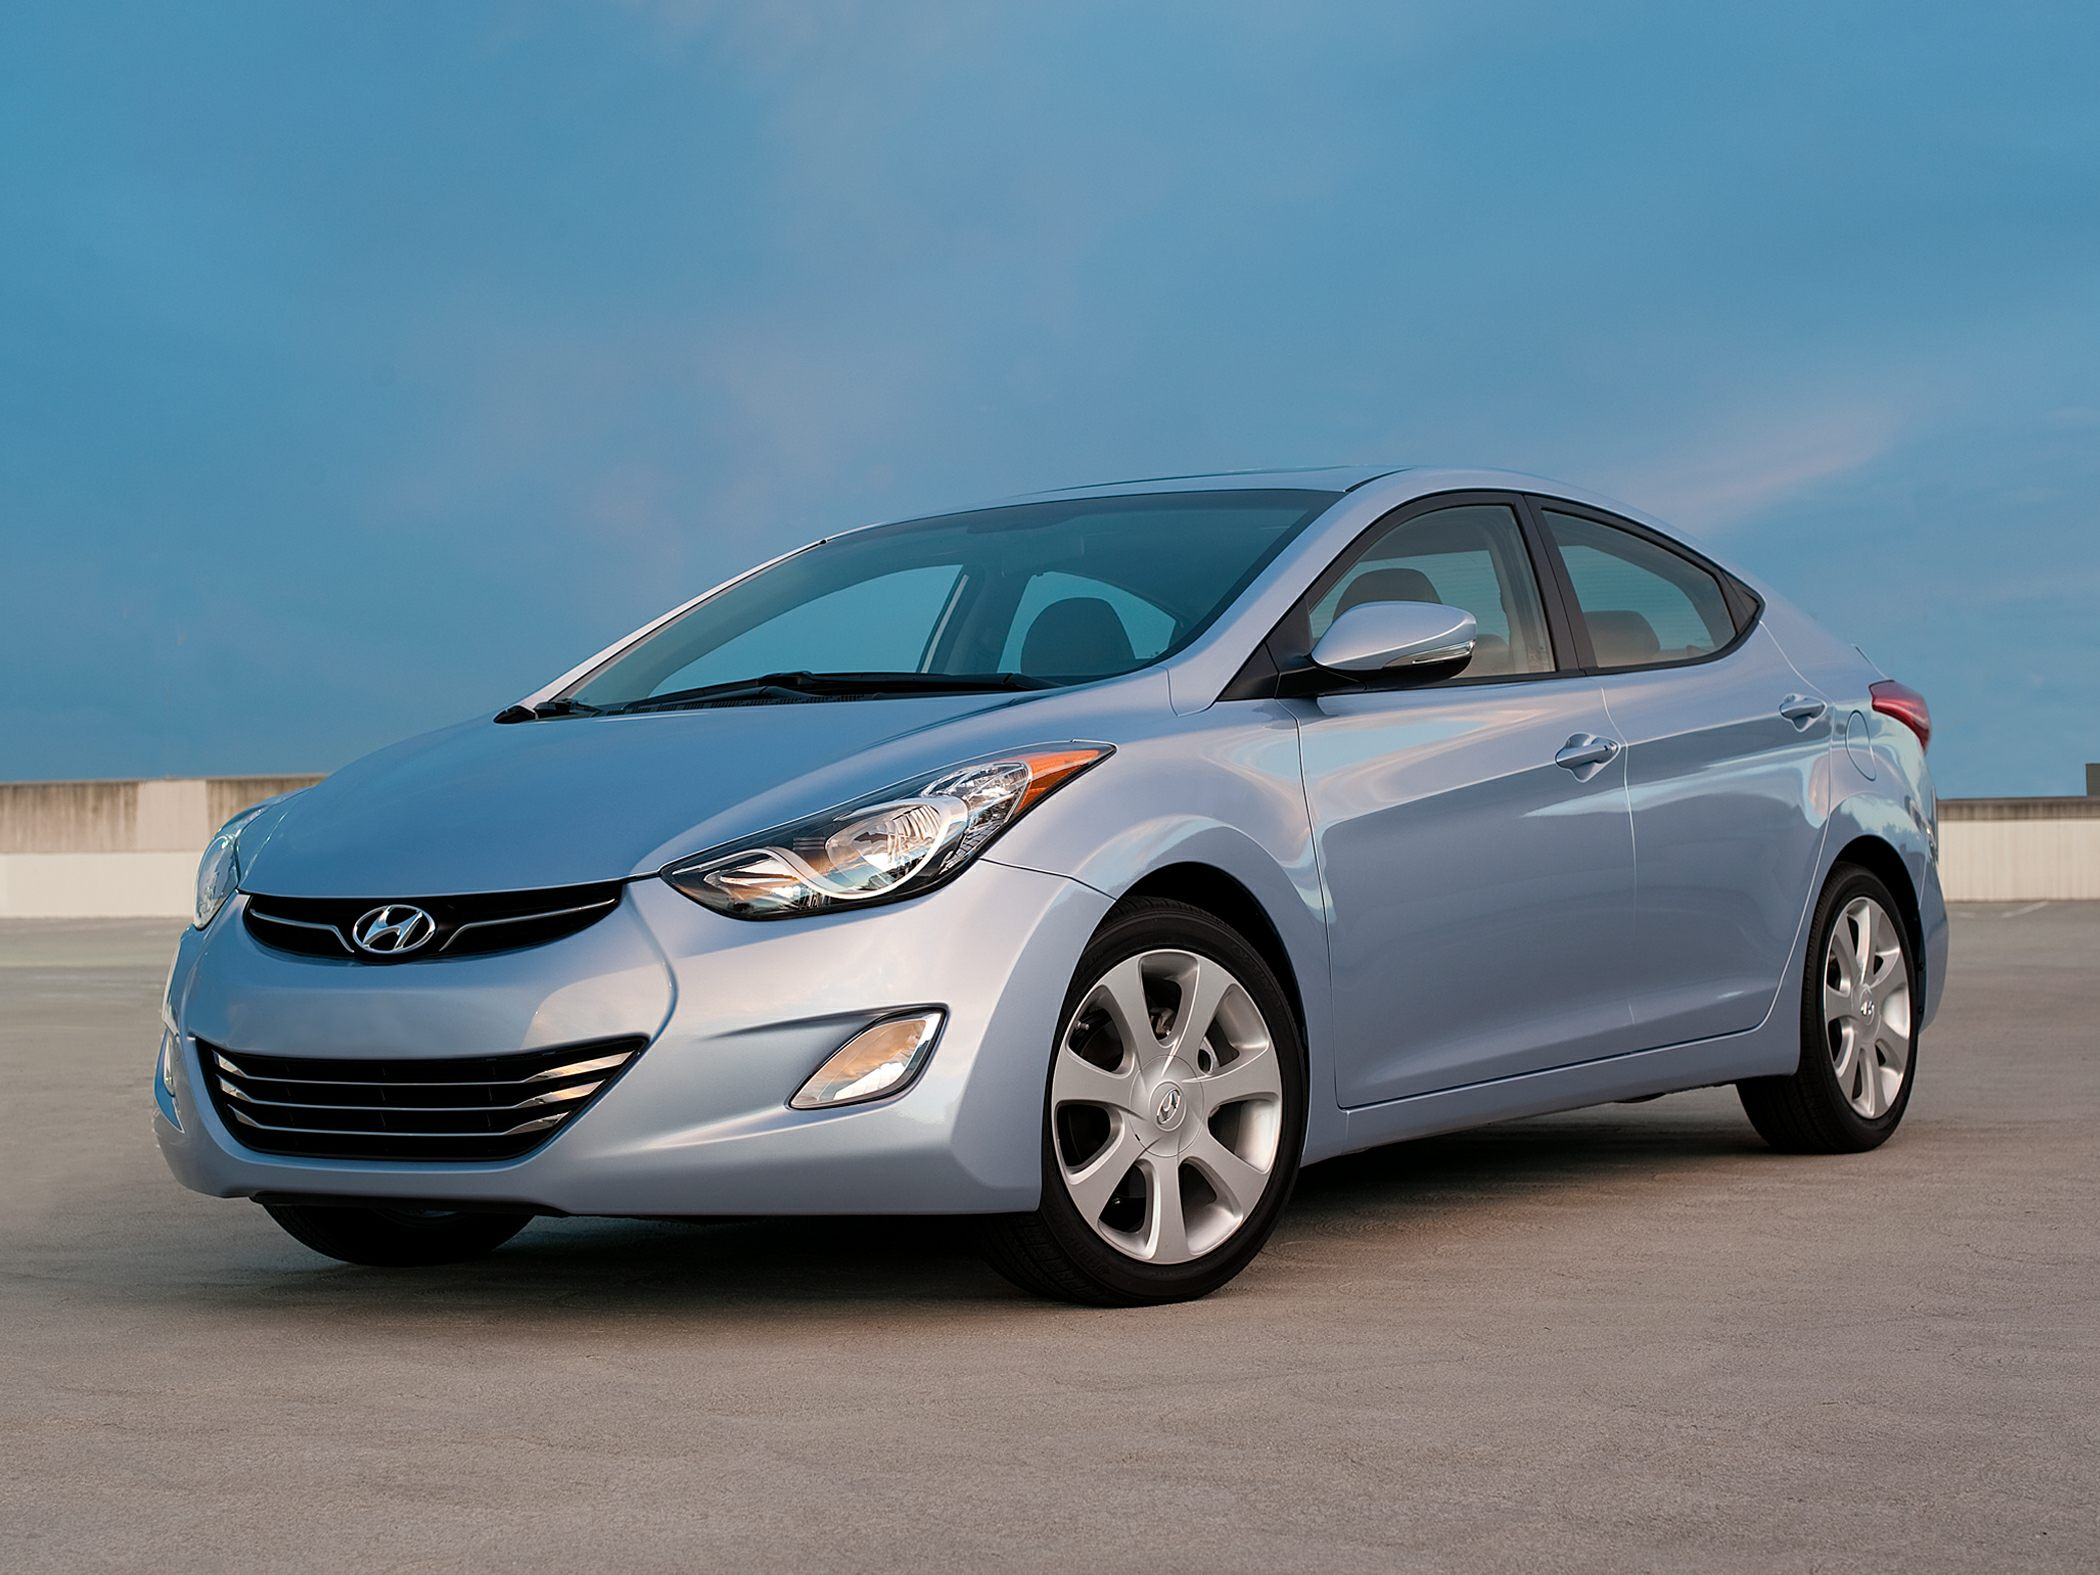 2013 HYUNDAI ELANTRA GLS